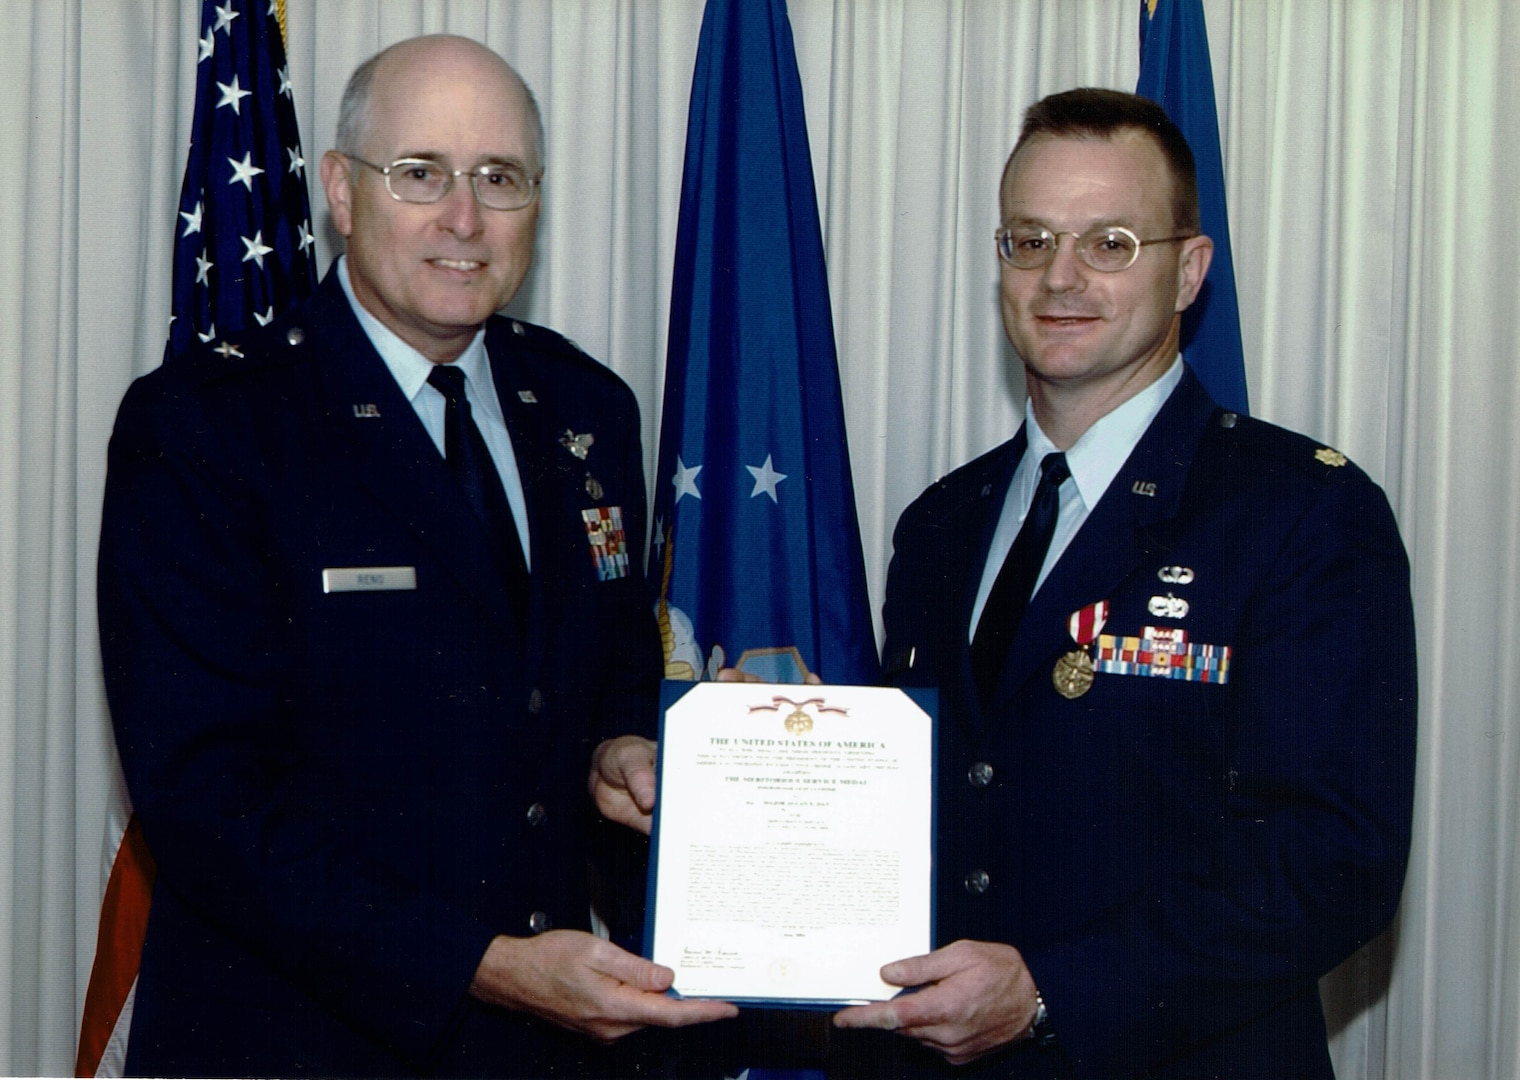 Two man in dress uniforms stand in front of the US and DLA flags holding a certificate.